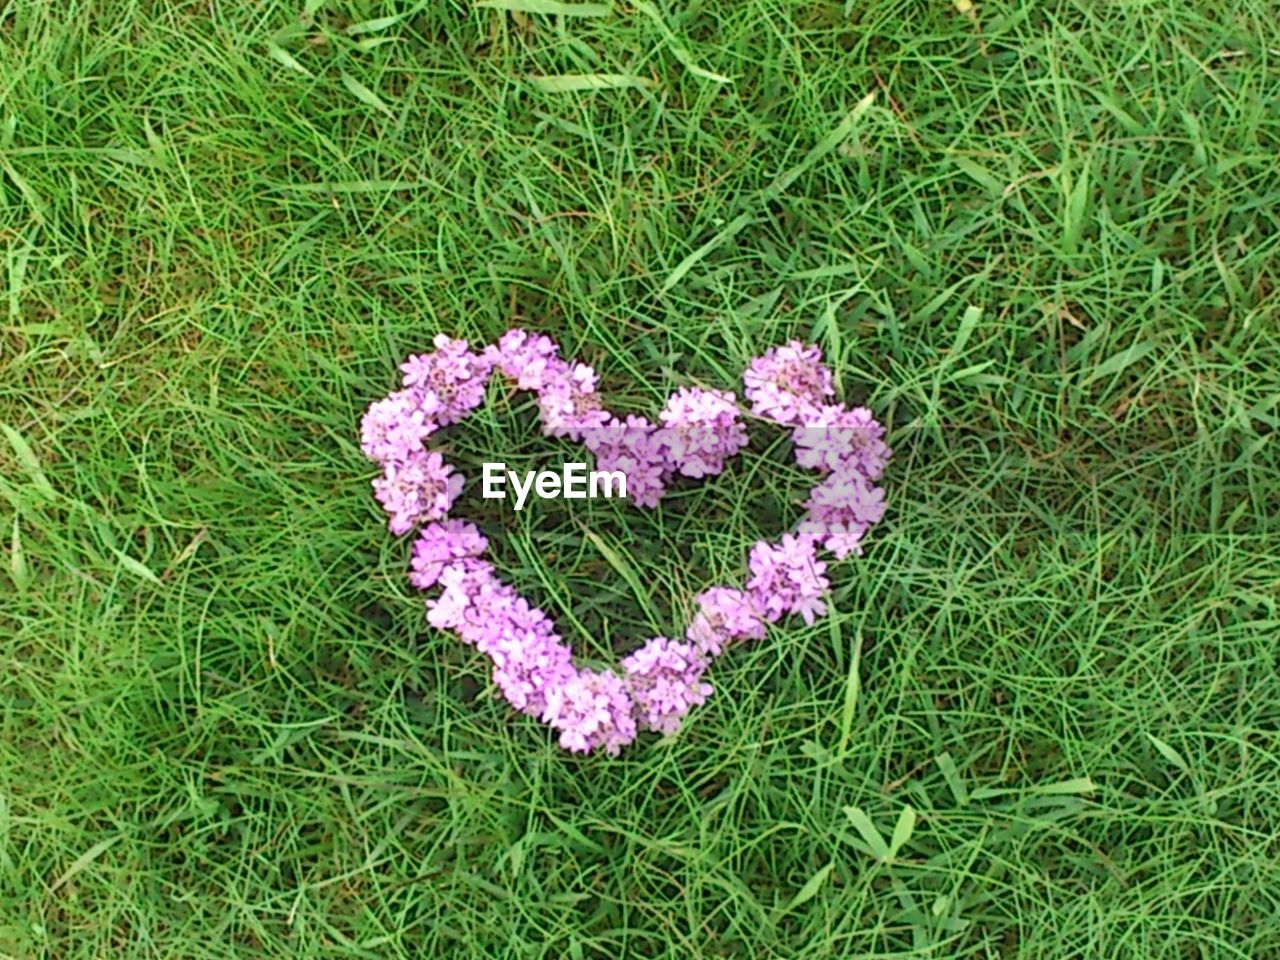 High Angle View Of Heart Shape Of Purple Flowers On Grassy Field